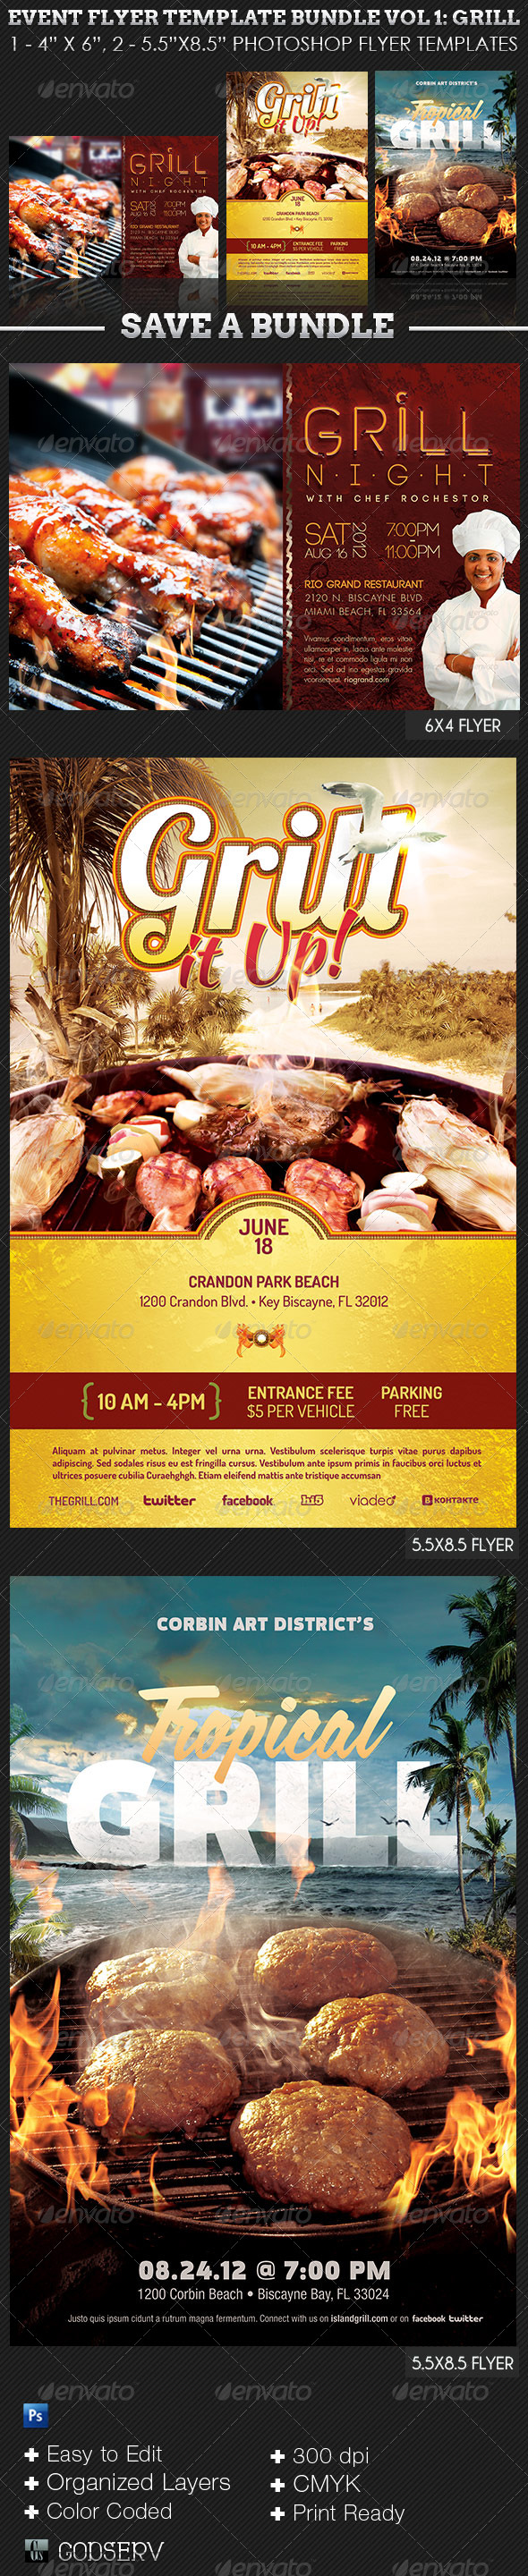 Barbeque and Grilling Event Flyer Template Bundle - Events Flyers